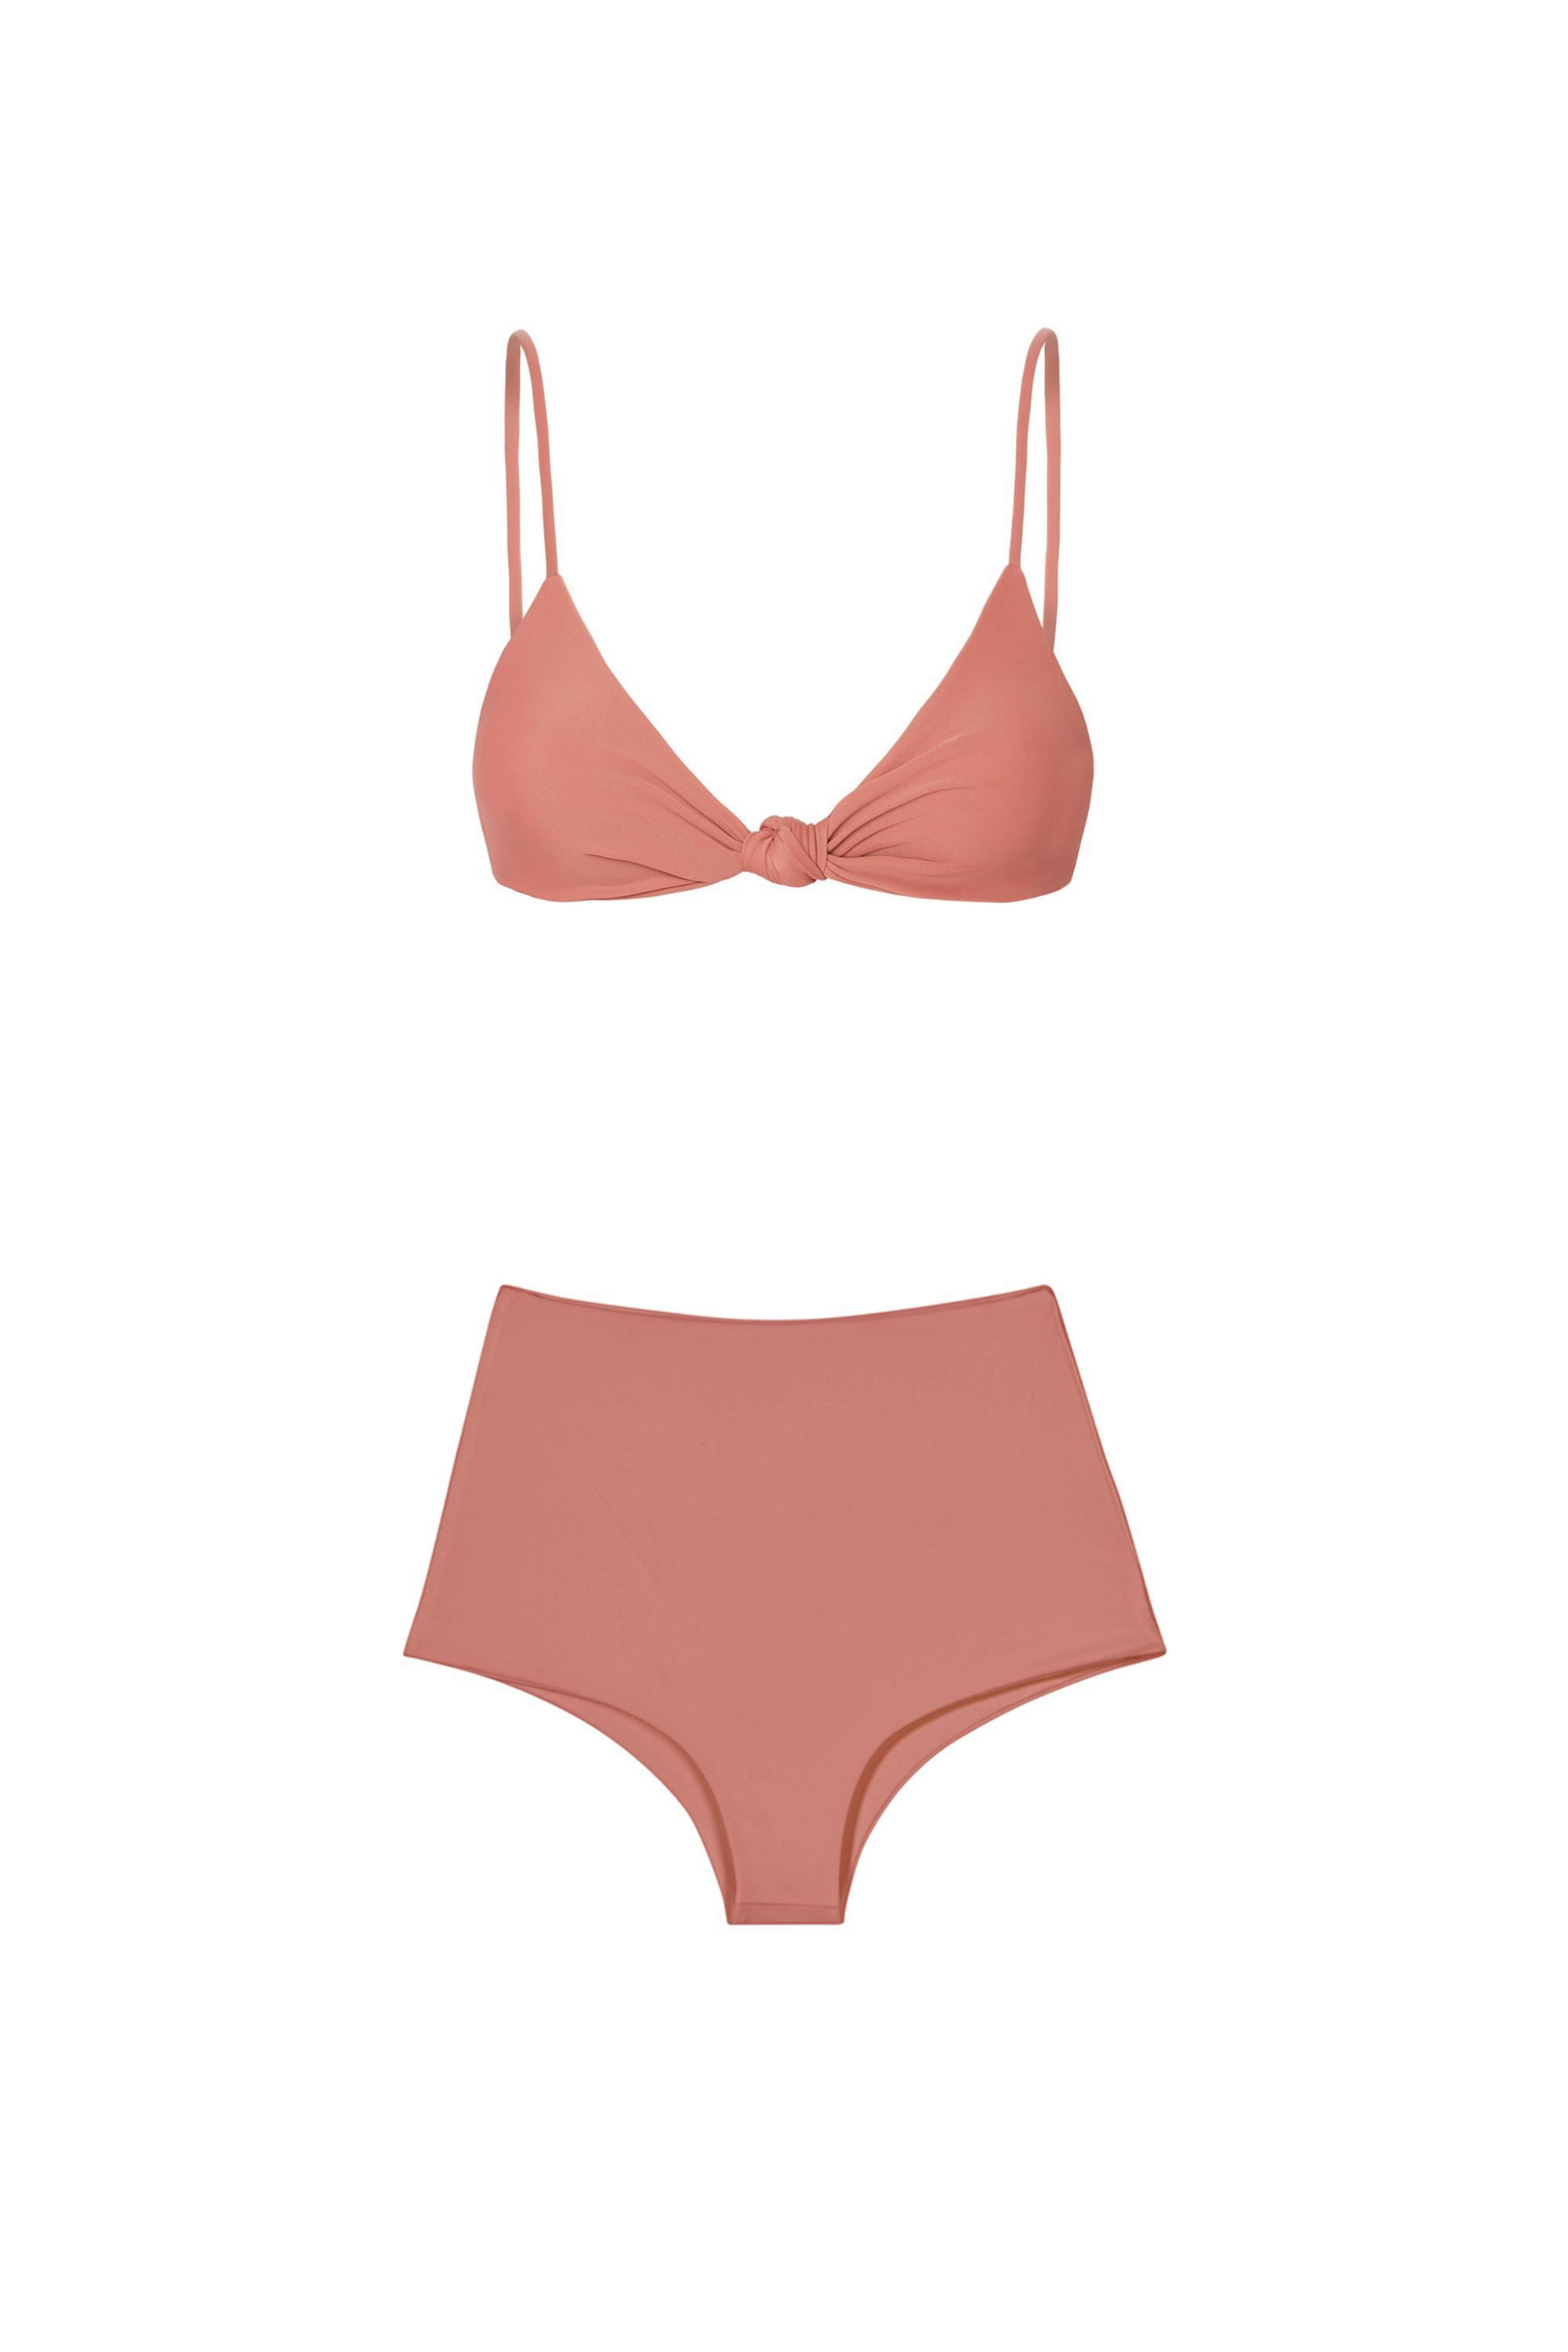 c1afa4b79e ... Because You're Probably Ready for a Vacation. 23 Flattering High  Waisted Bikinis for 2017- Retro High-Waisted Style Swimsuits